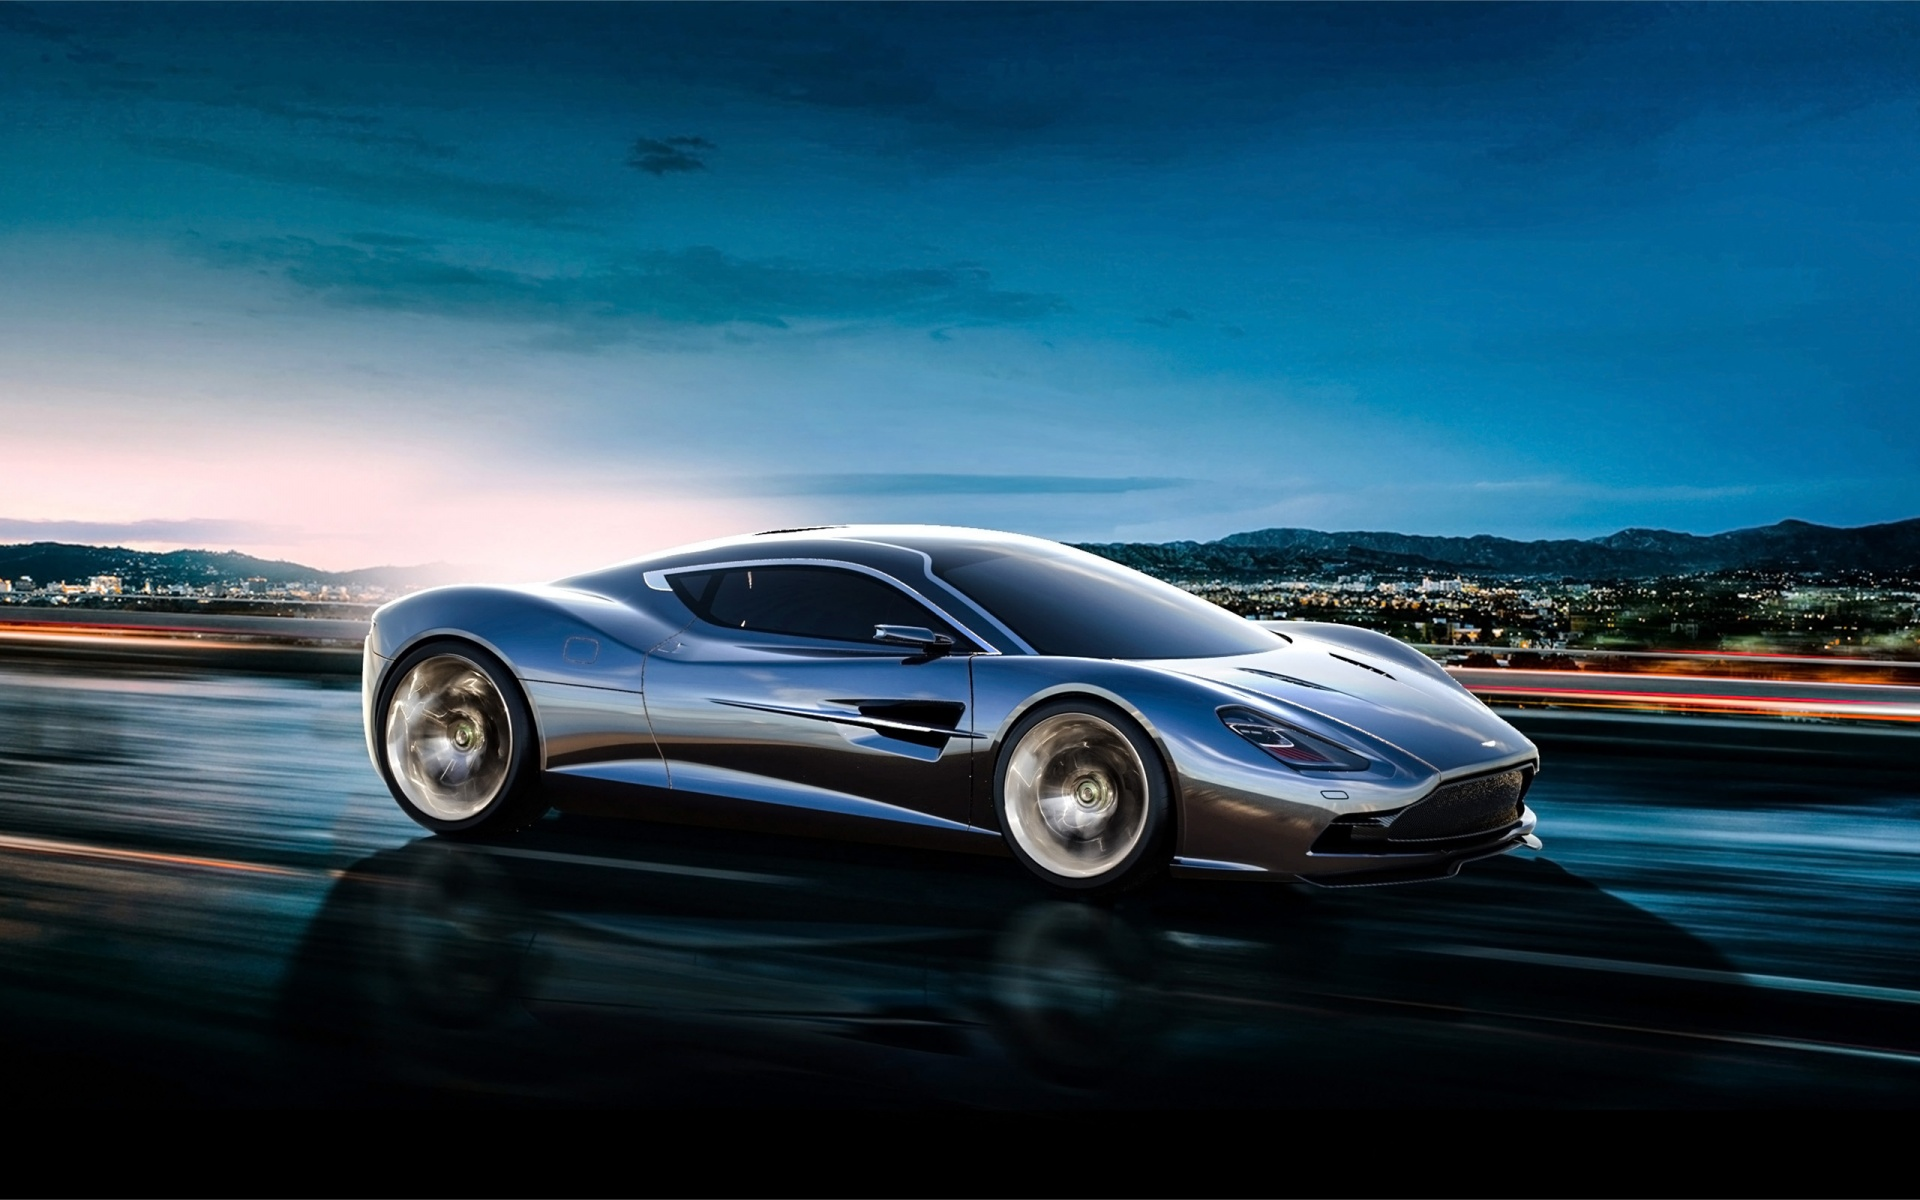 2013 Aston Martin DBC Concept 3 Wallpaper HD Car Wallpapers 1920x1200